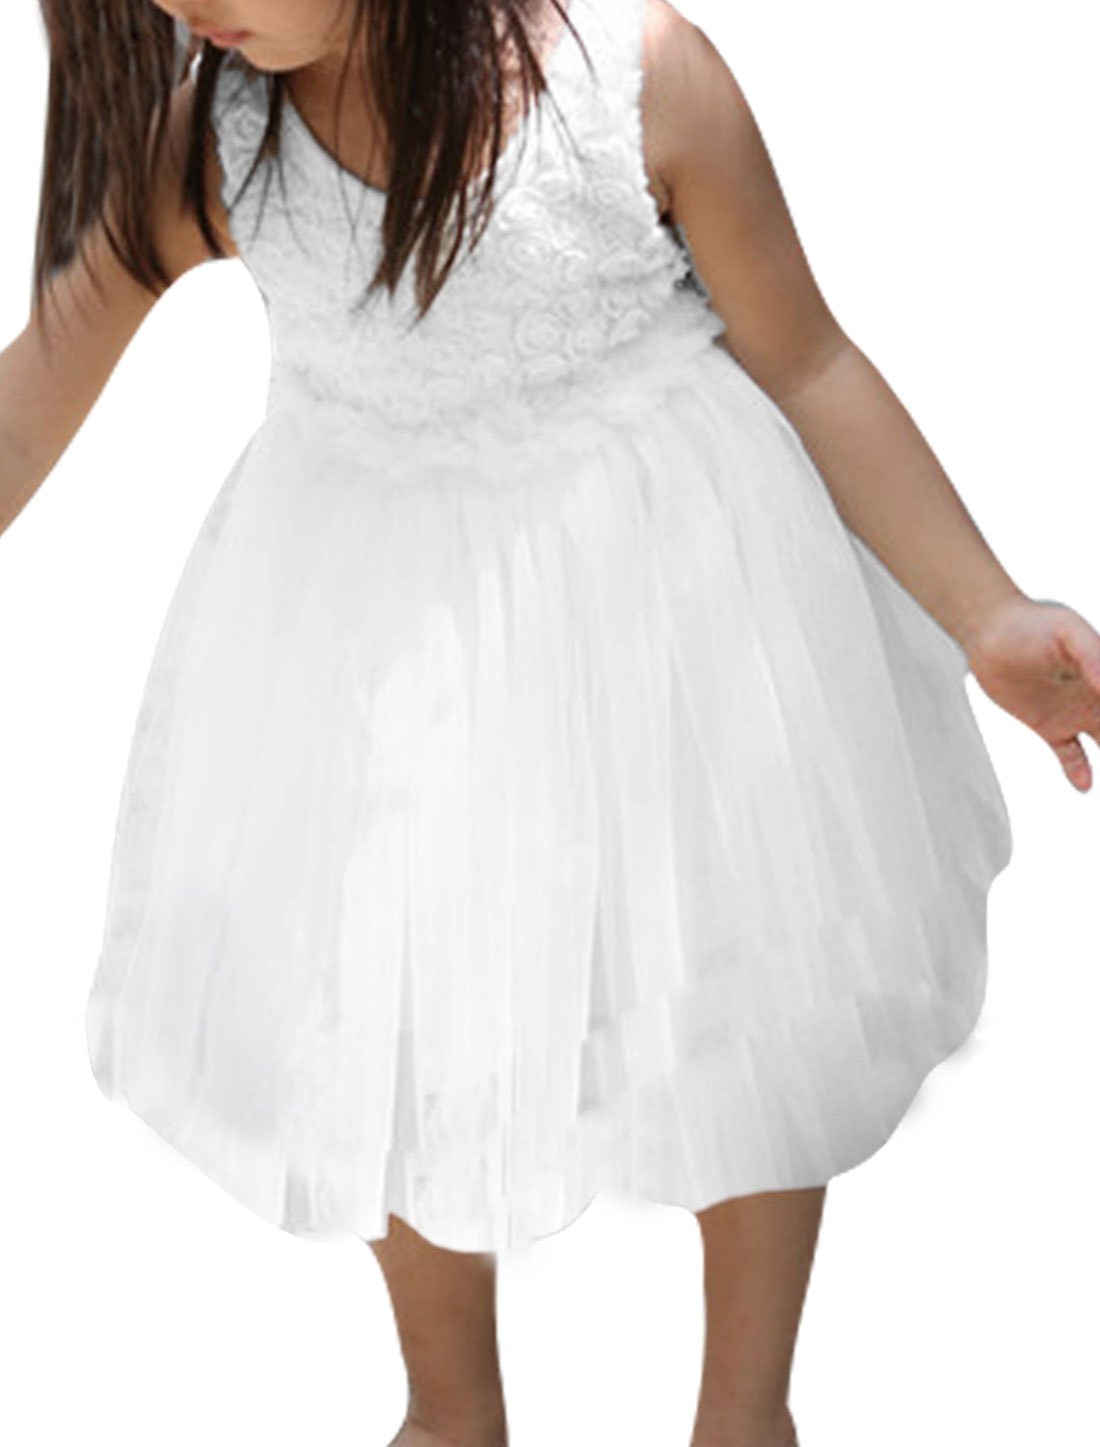 Girl Sleeveless Floral Design Mesh Panel Pleated Dress White 4T